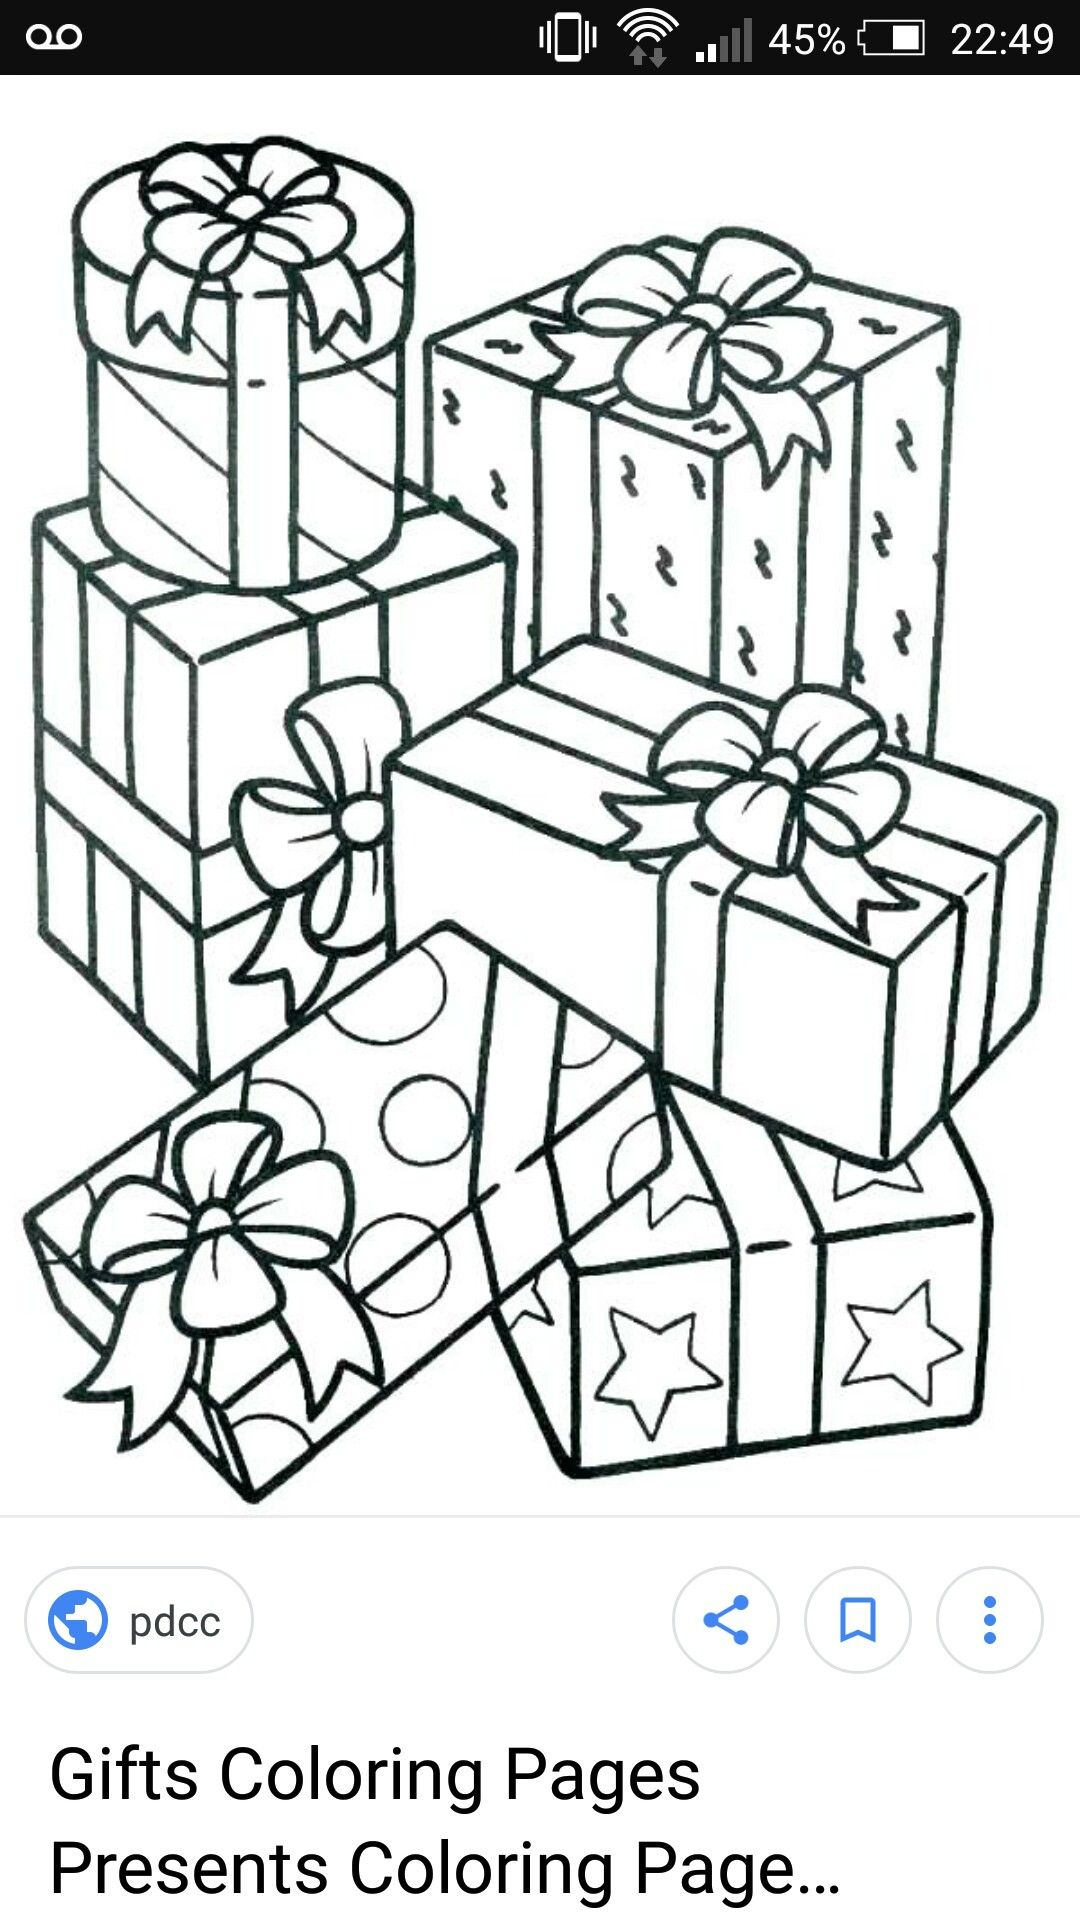 Presents Coloring Pages Christmas Gift Coloring Pages Christmas